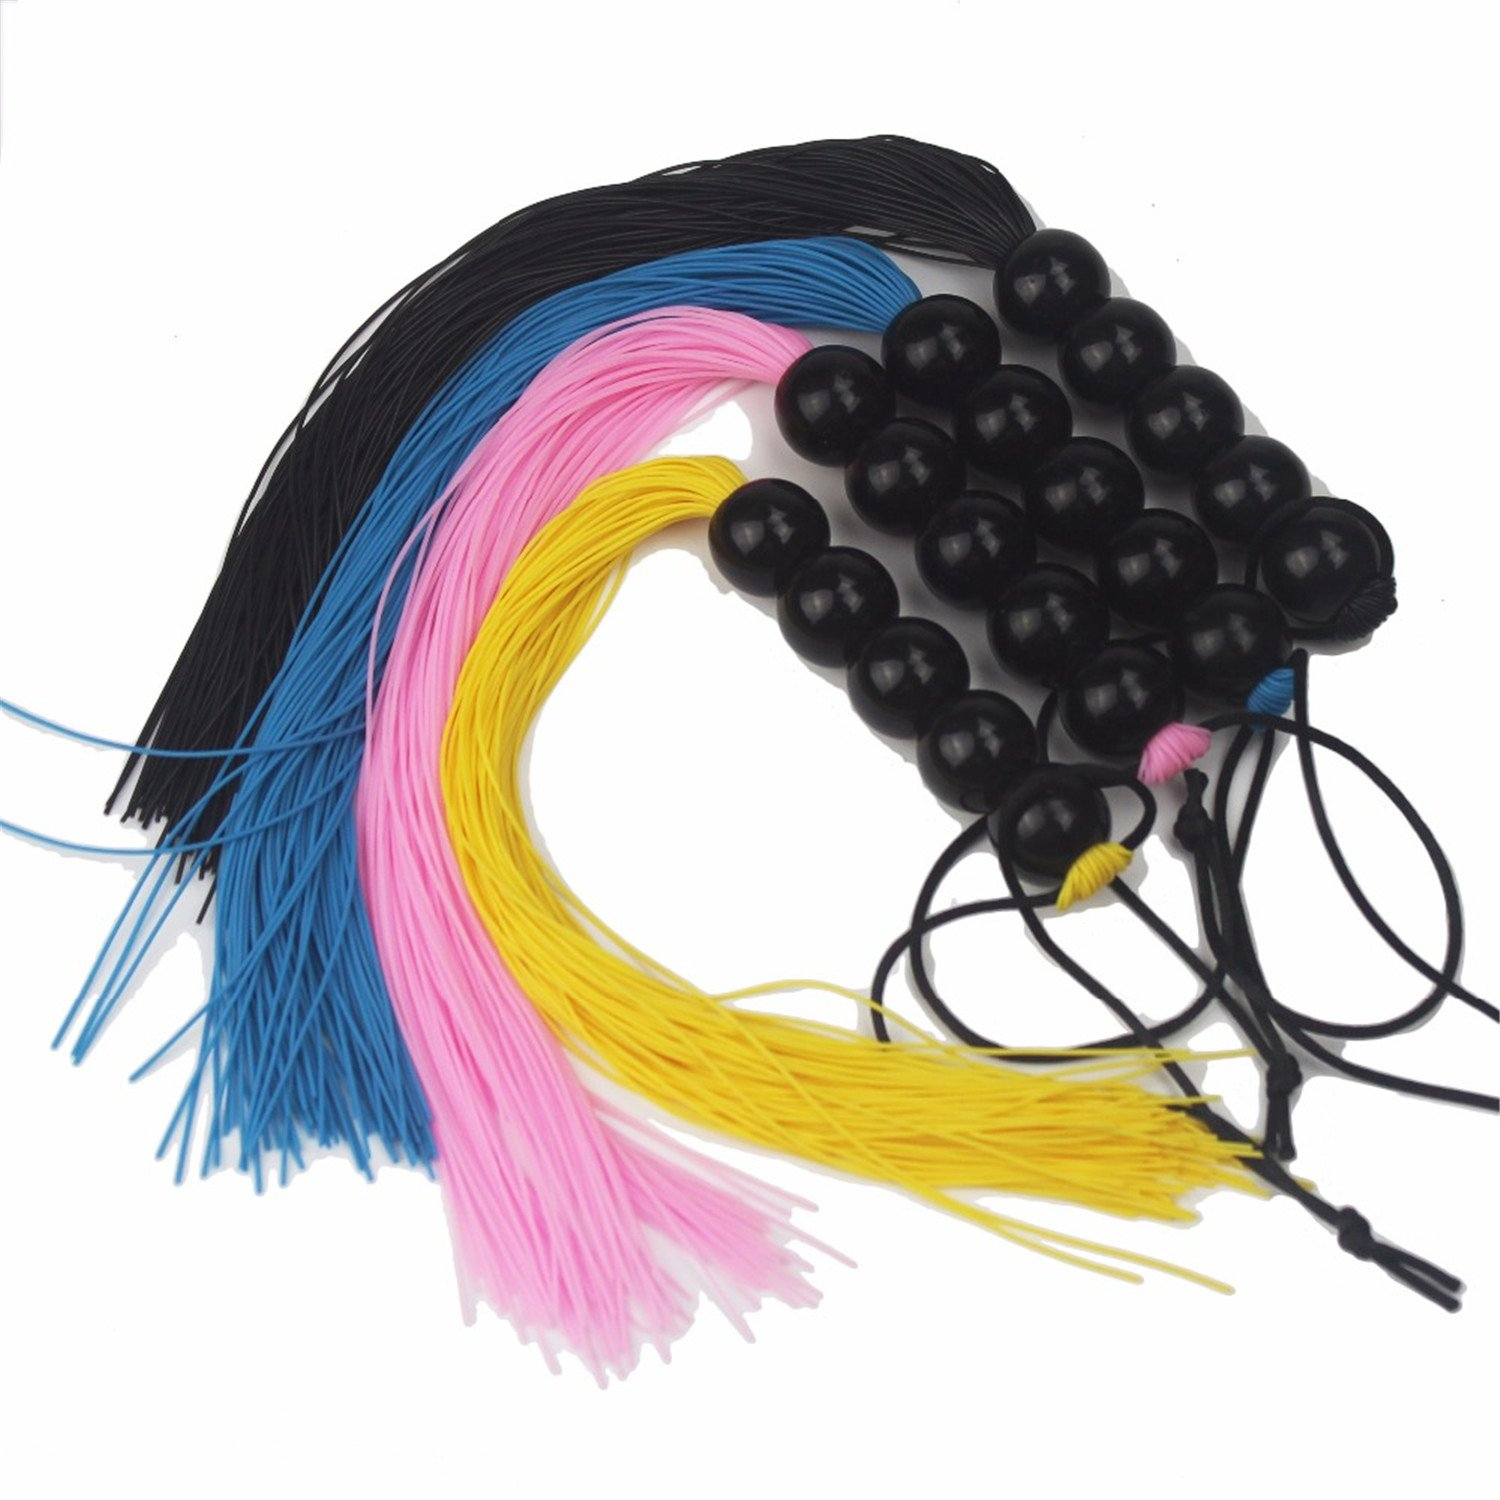 ... Padel Bondage Sm Game Spanking Paddle Whip Ridding Flogger Toy Couples Women Men Role Cosplay,Viberators Waves USB Wireless: Health & Personal Care